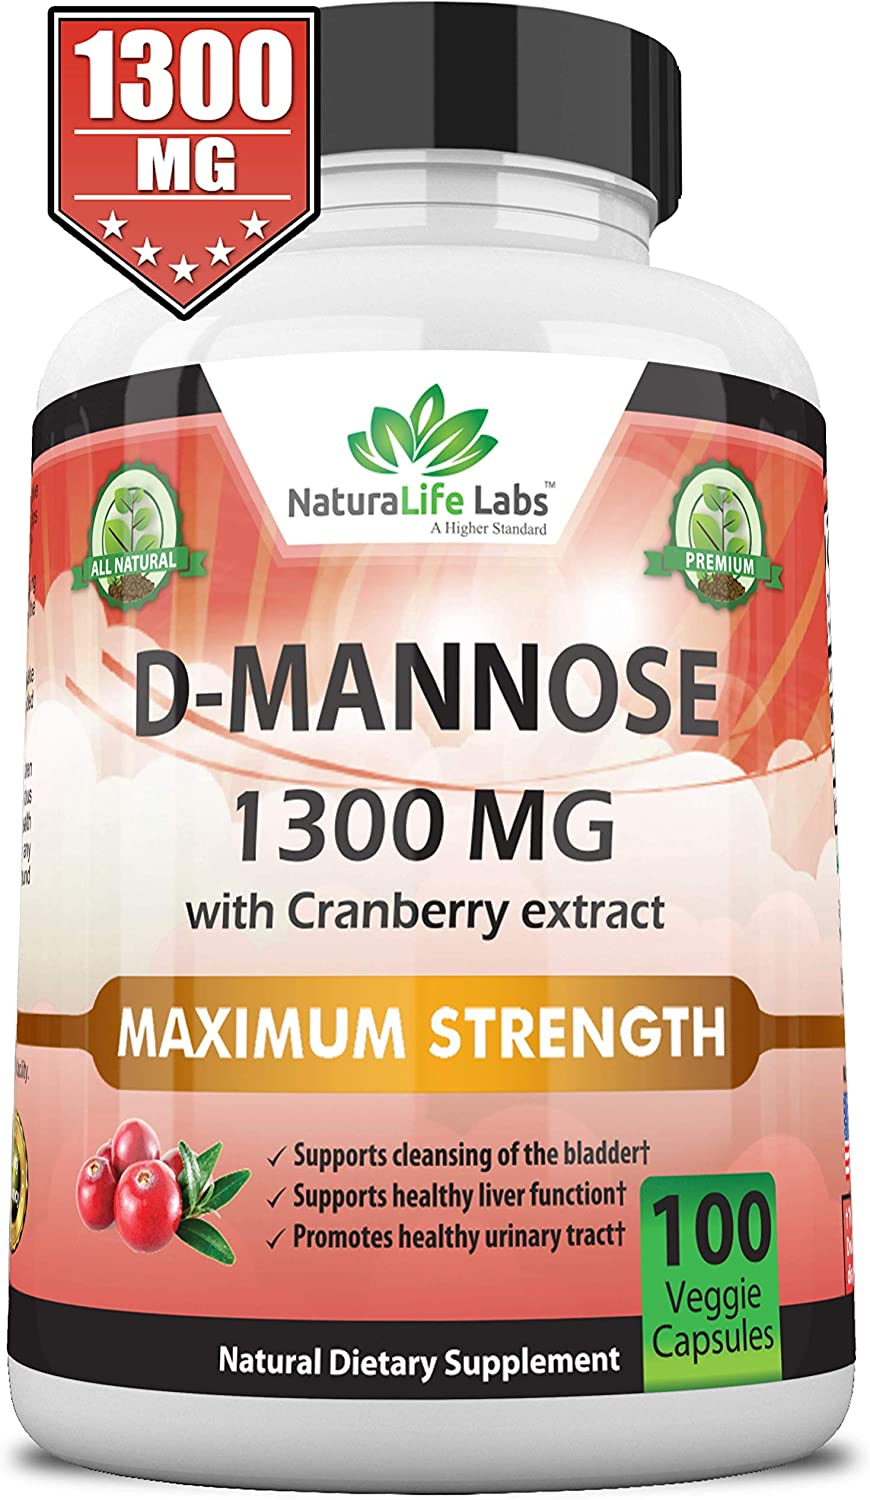 D-Mannose 1,300 mg with Cranberry Extract Fast-Acting, Flush Impurities, Natural Urinary Tract Health- 100 Veggie Capsules: Health & Personal Care